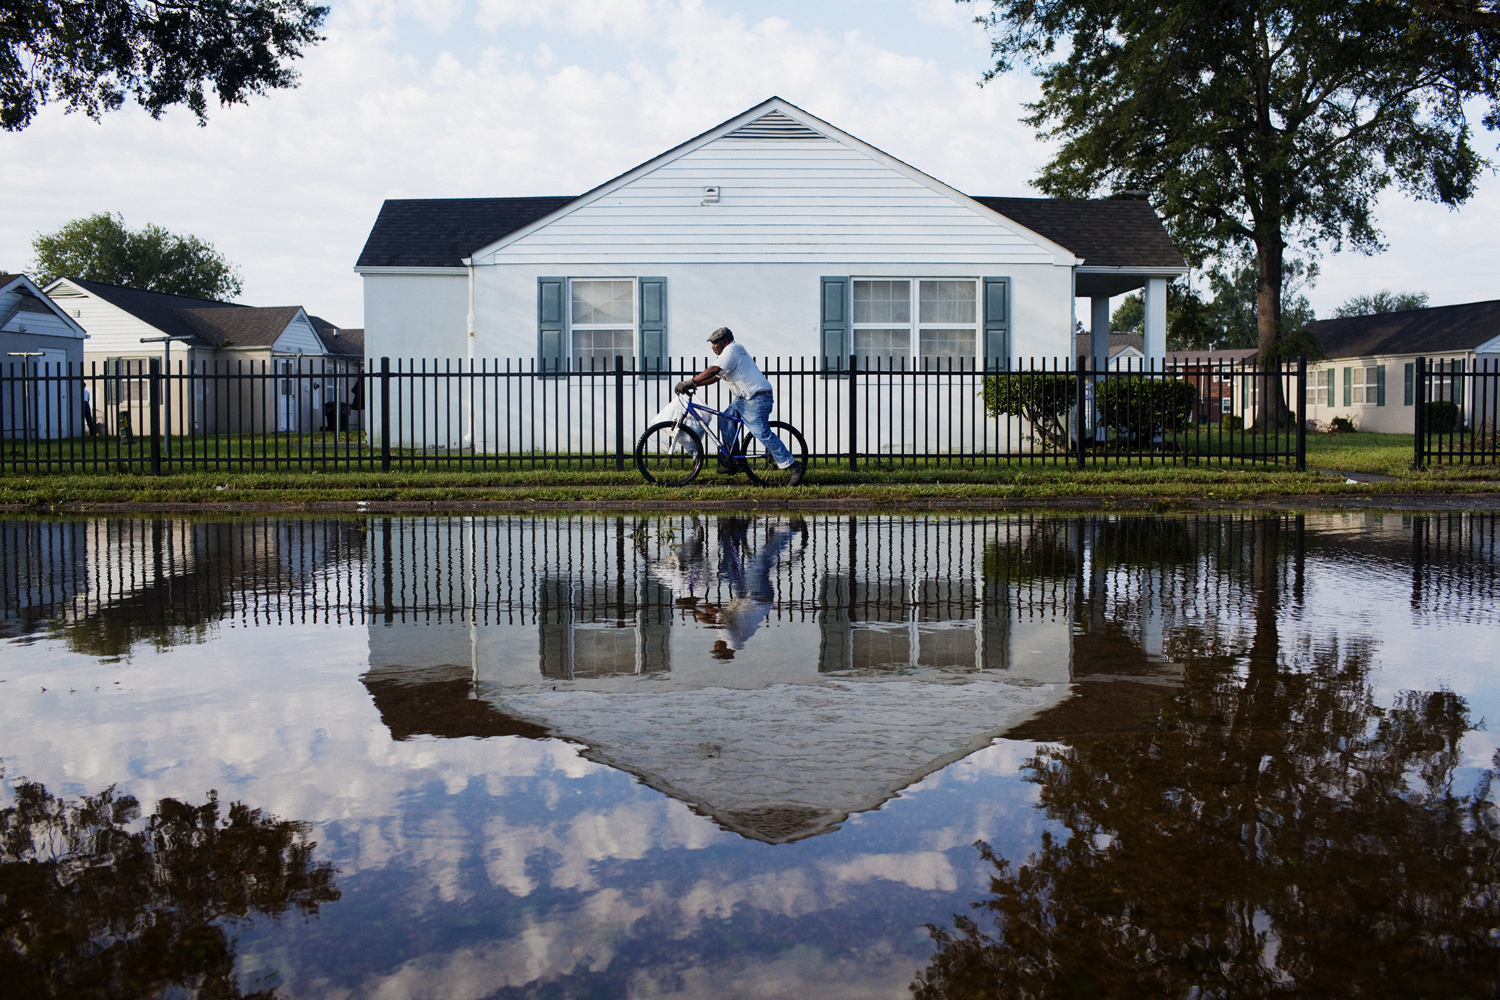 August 28, 2011, Portsmouth, Virginia. A resident rides his bicicyle past a flooded street in Portsmouth, Virginia on Sunday.